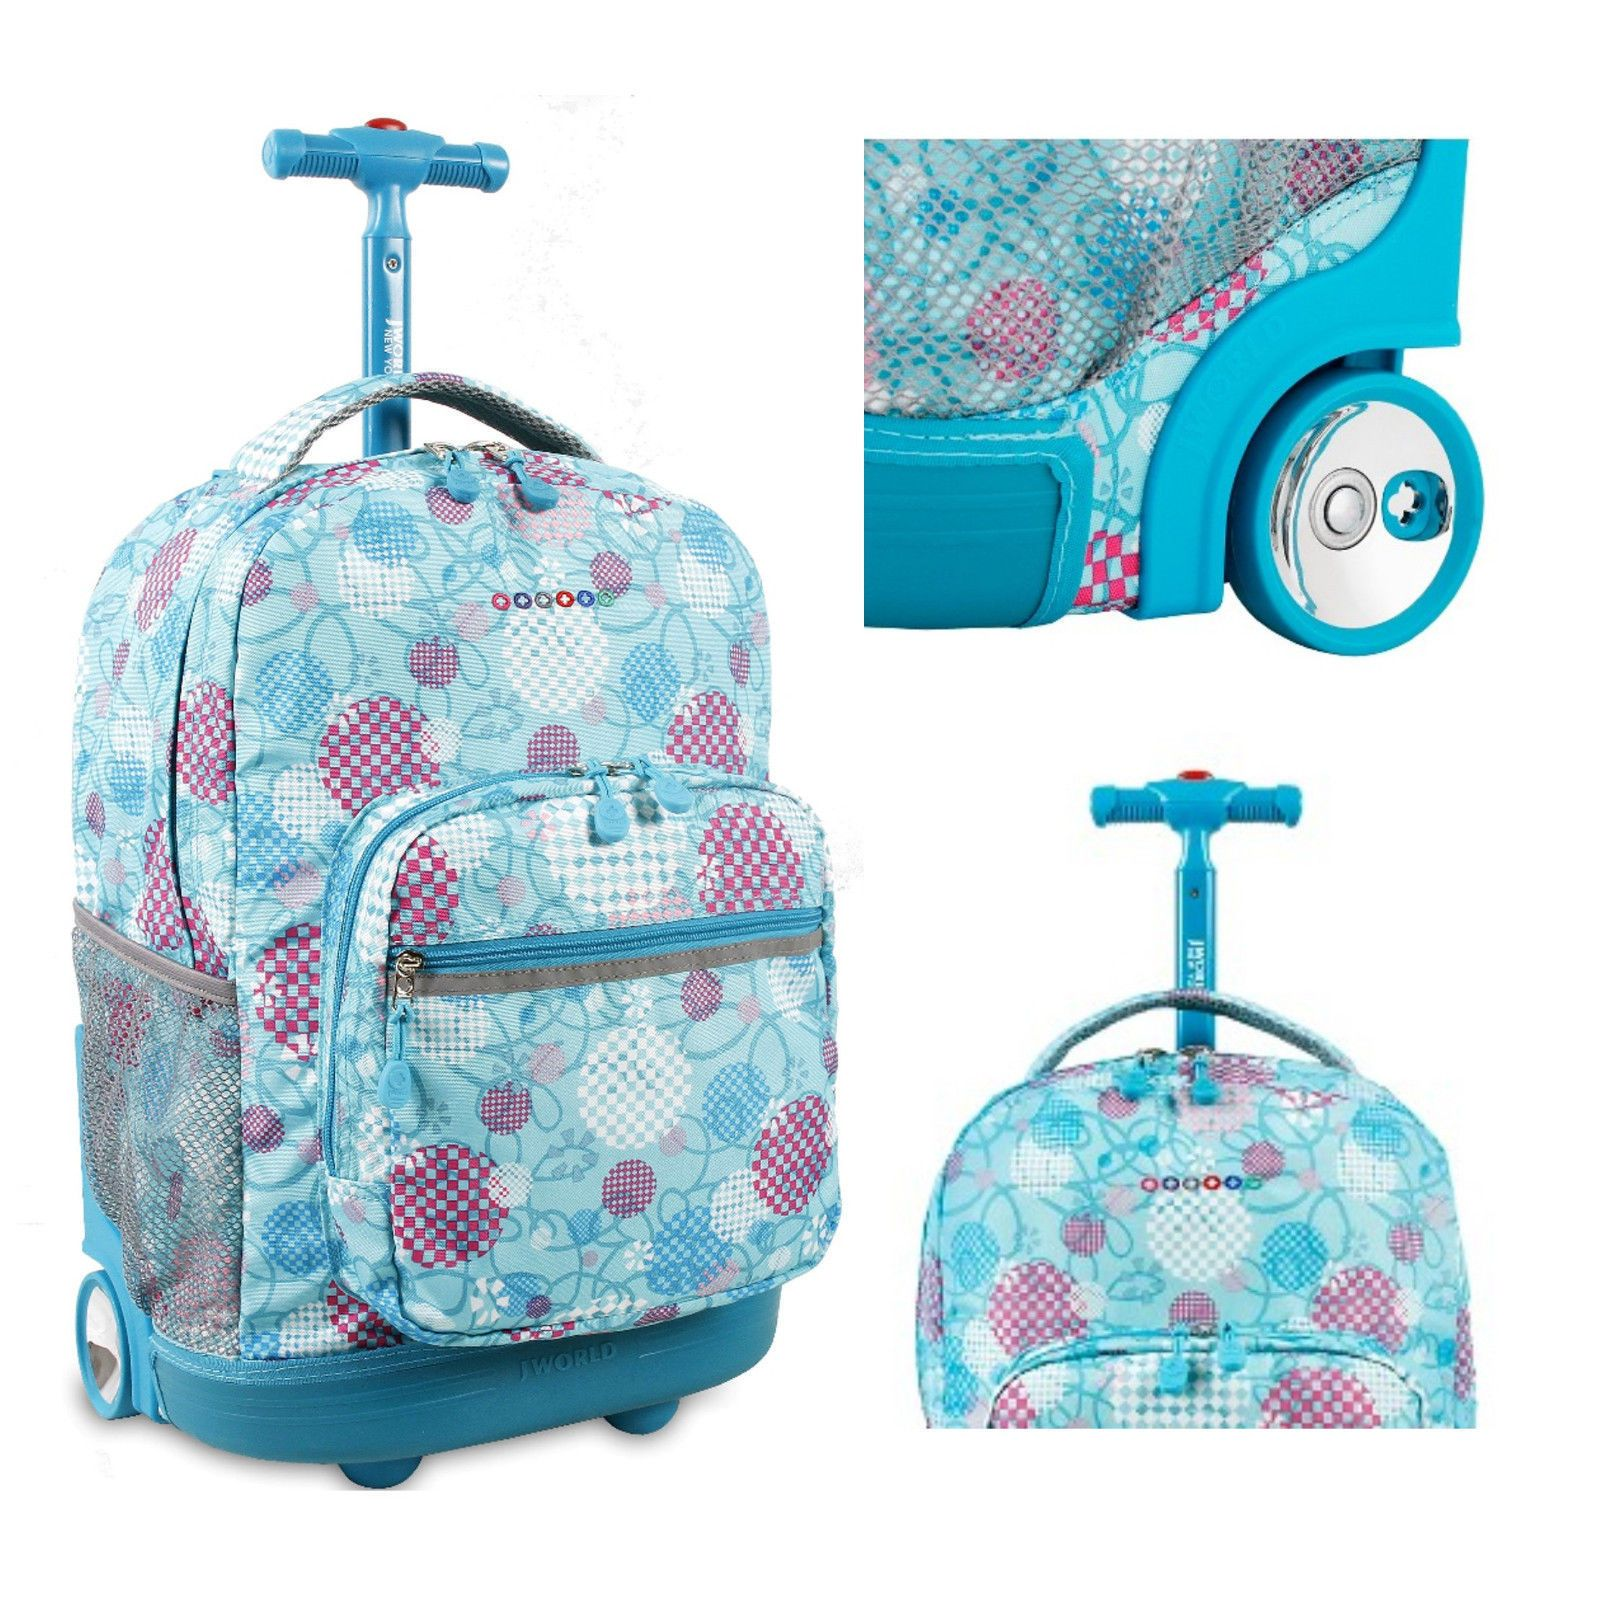 Girls  Rolling  Backpack Wheeled Book Bag  School Kids Travel Carry Luggage  Tote ddedc4902884c